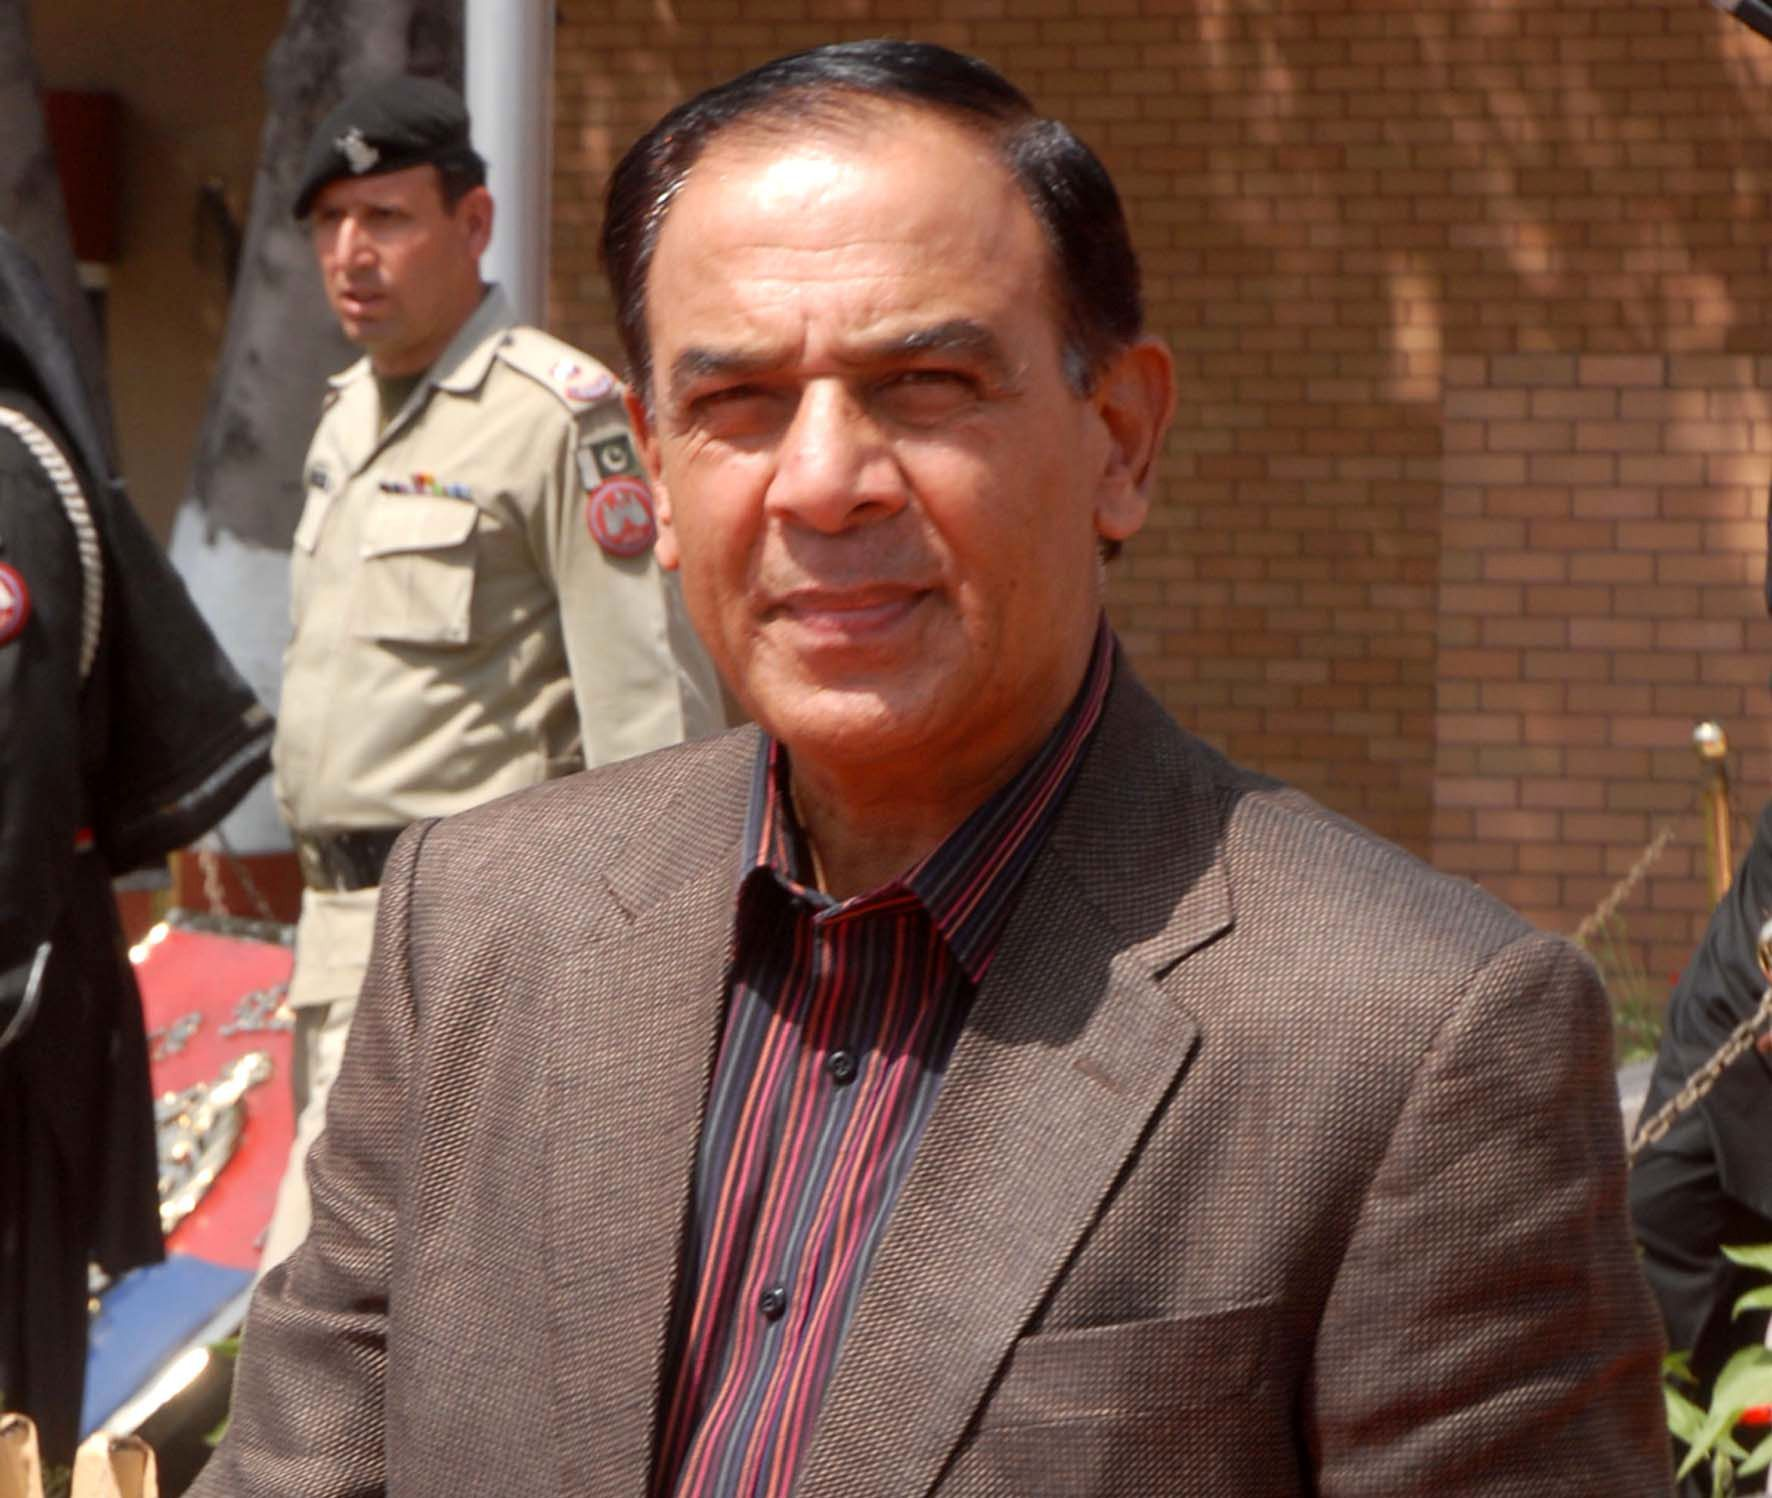 nab strategy acknowledged by monitoring agencies